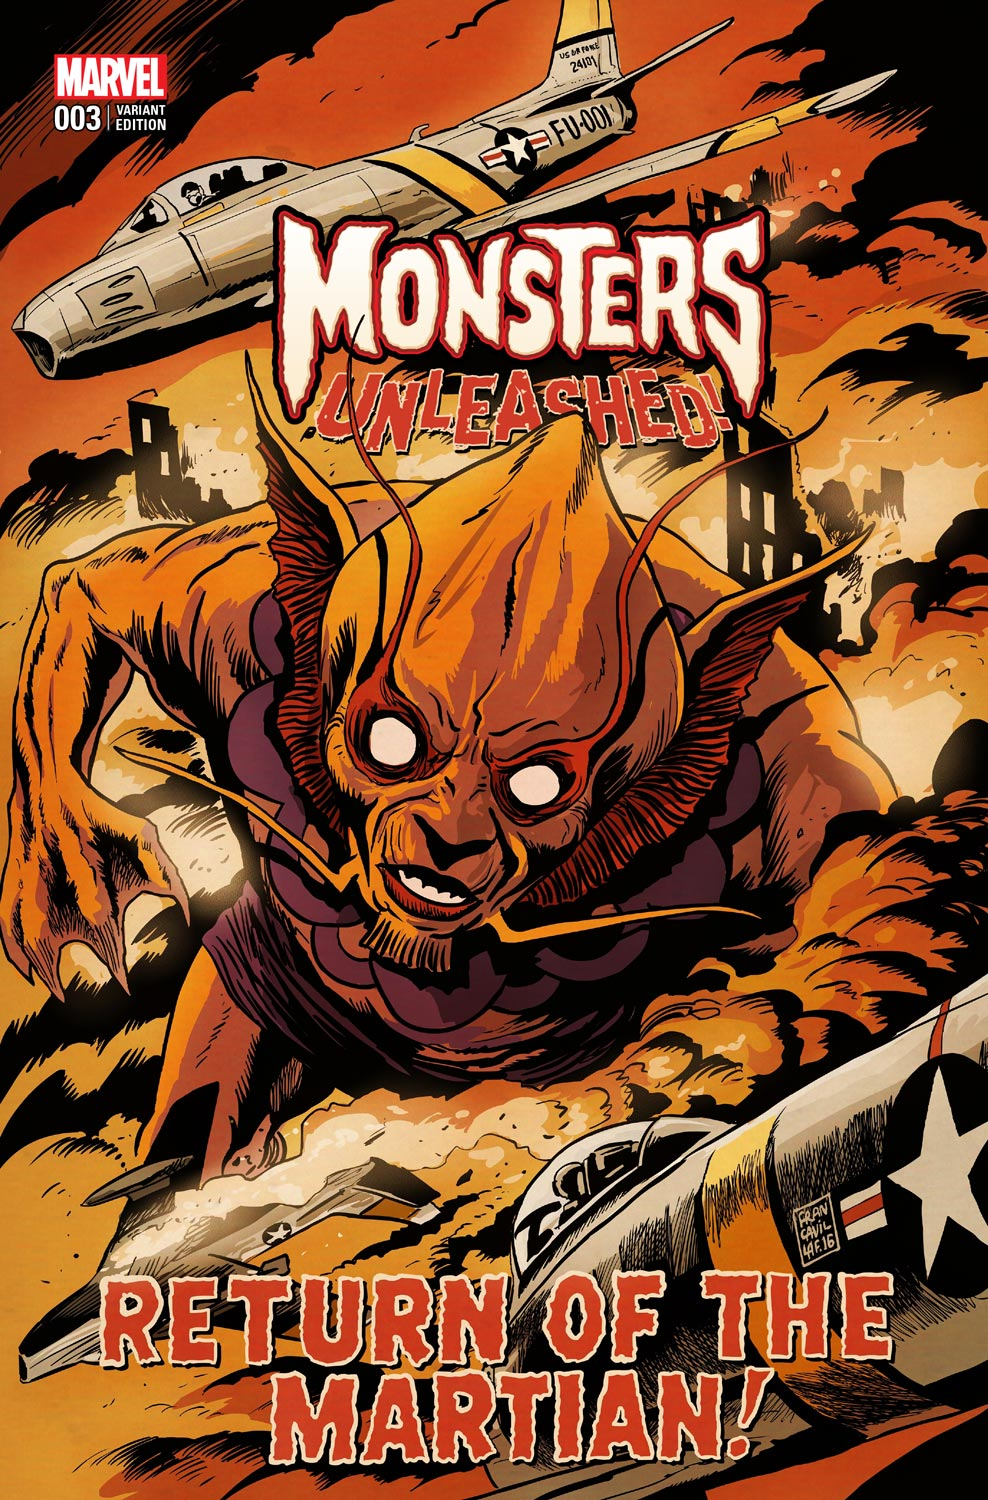 Monsters_Unleashed_3_Francavilla_Variant